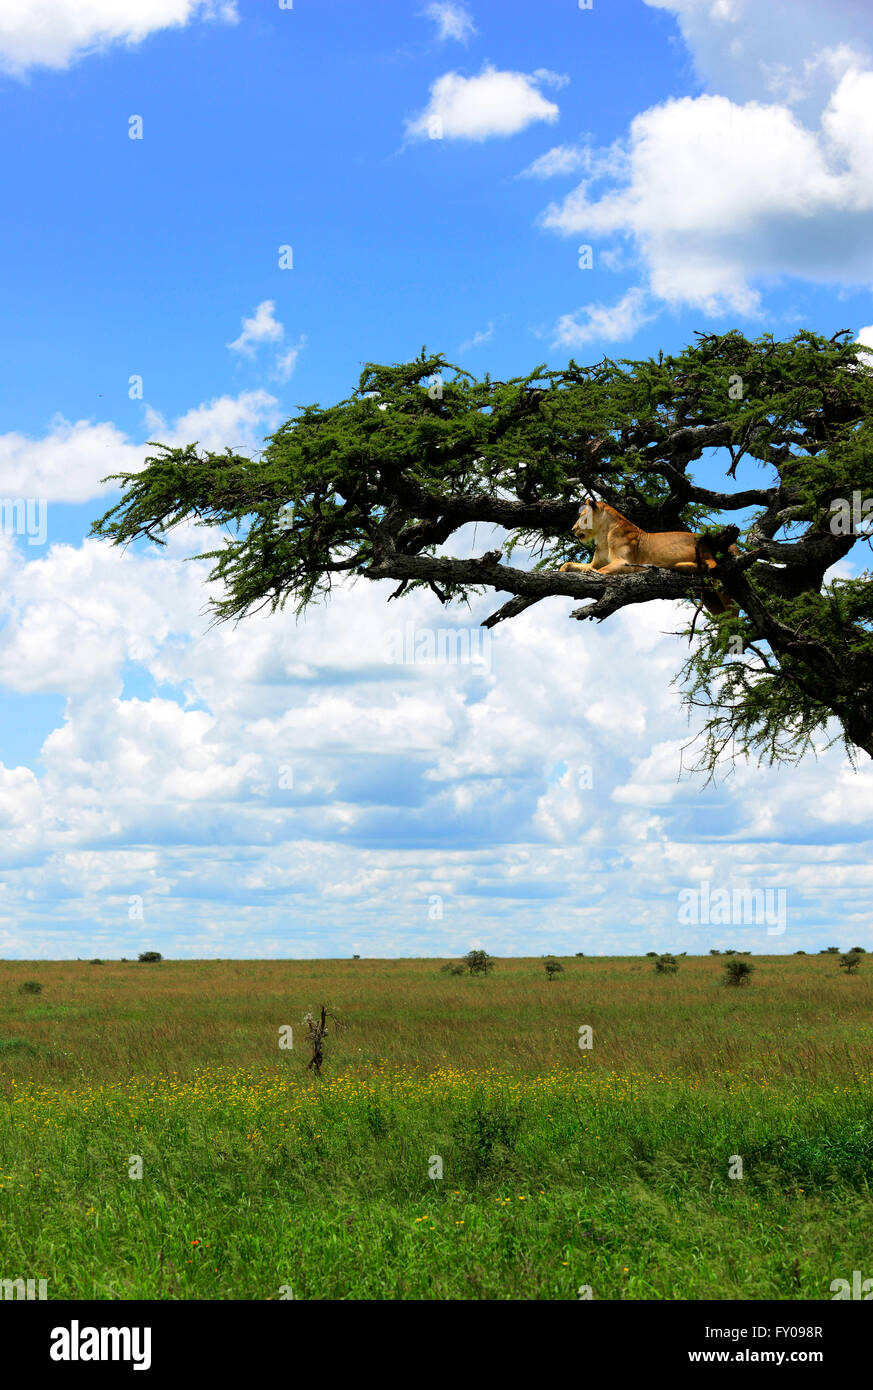 Lionesses on a tree in Serengeti National Park, Tanzania. - Stock Image